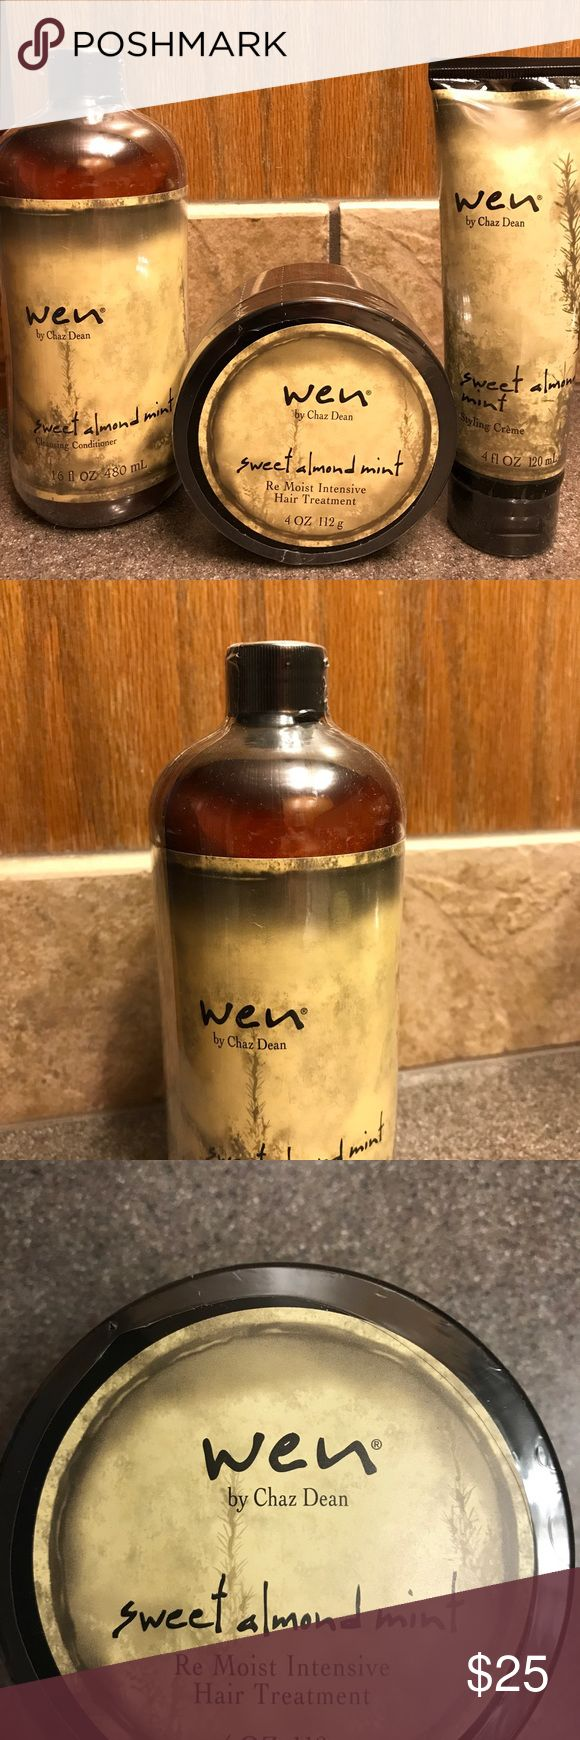 WEN hair care set Cleansing Conditioner and Sweet Almond Mint Re-Moist Intensive Hair Treatment and Styling Creme Wen Other